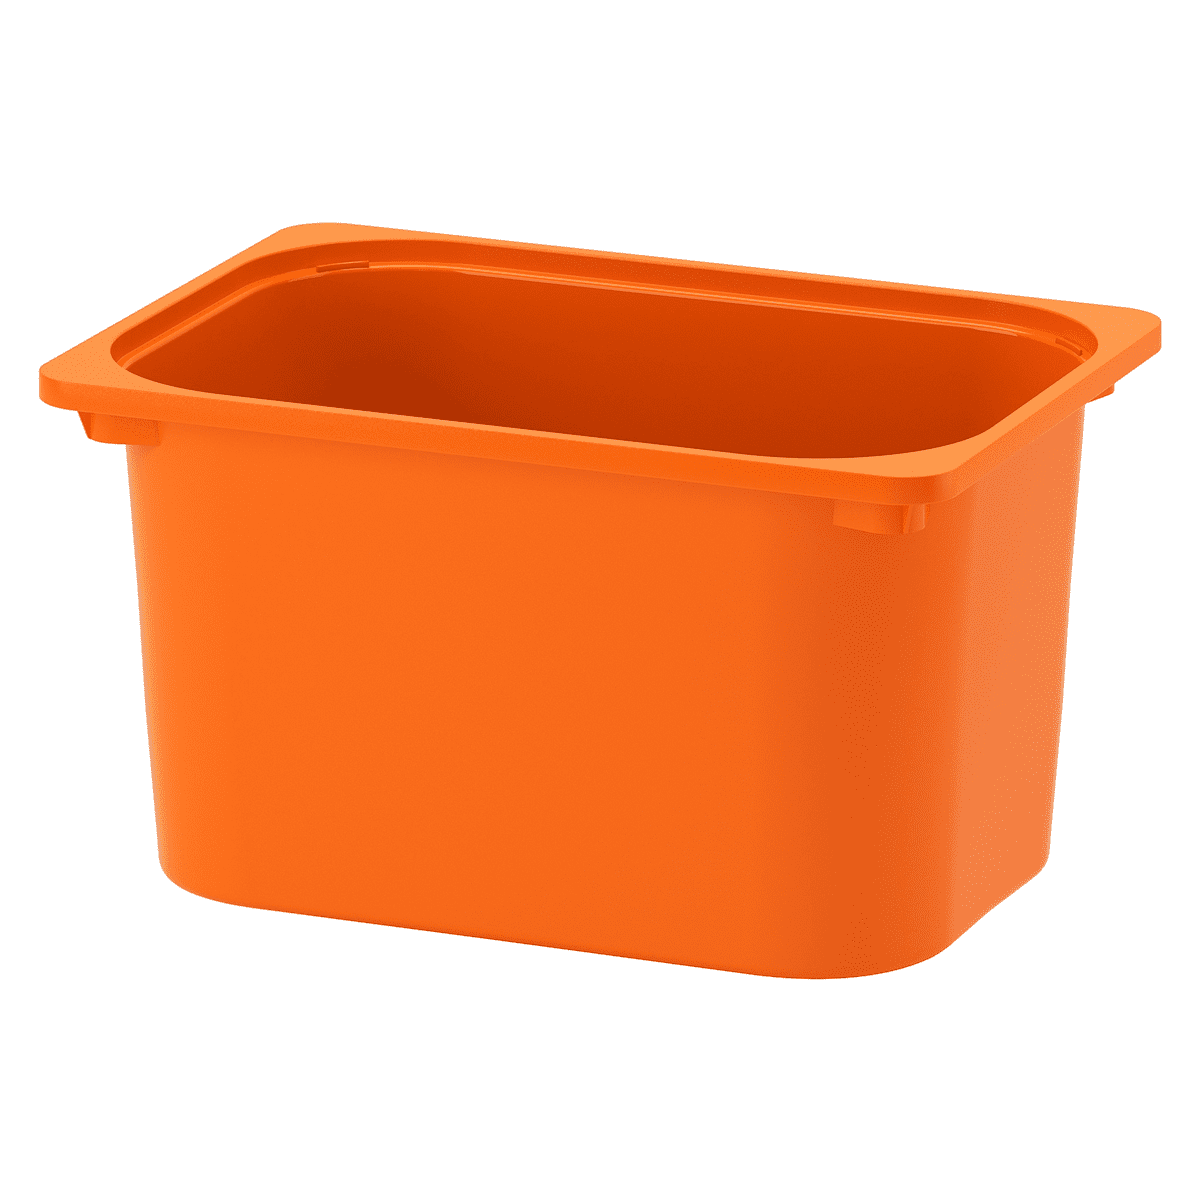 TROFAST Storage box, orange